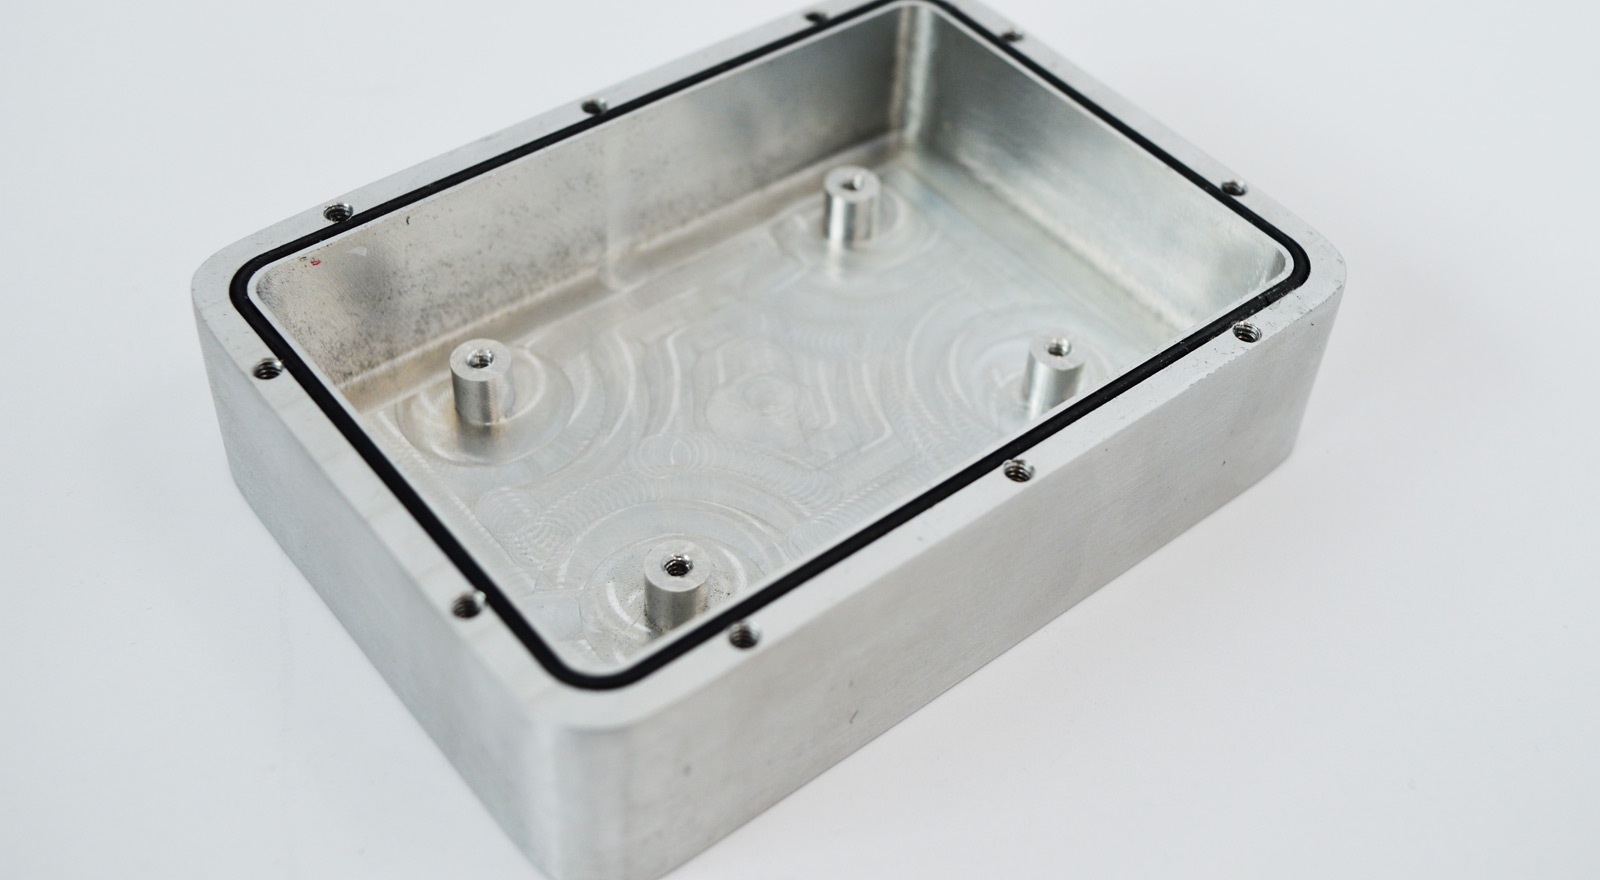 How To Design Enclosures That Protect Against Water And